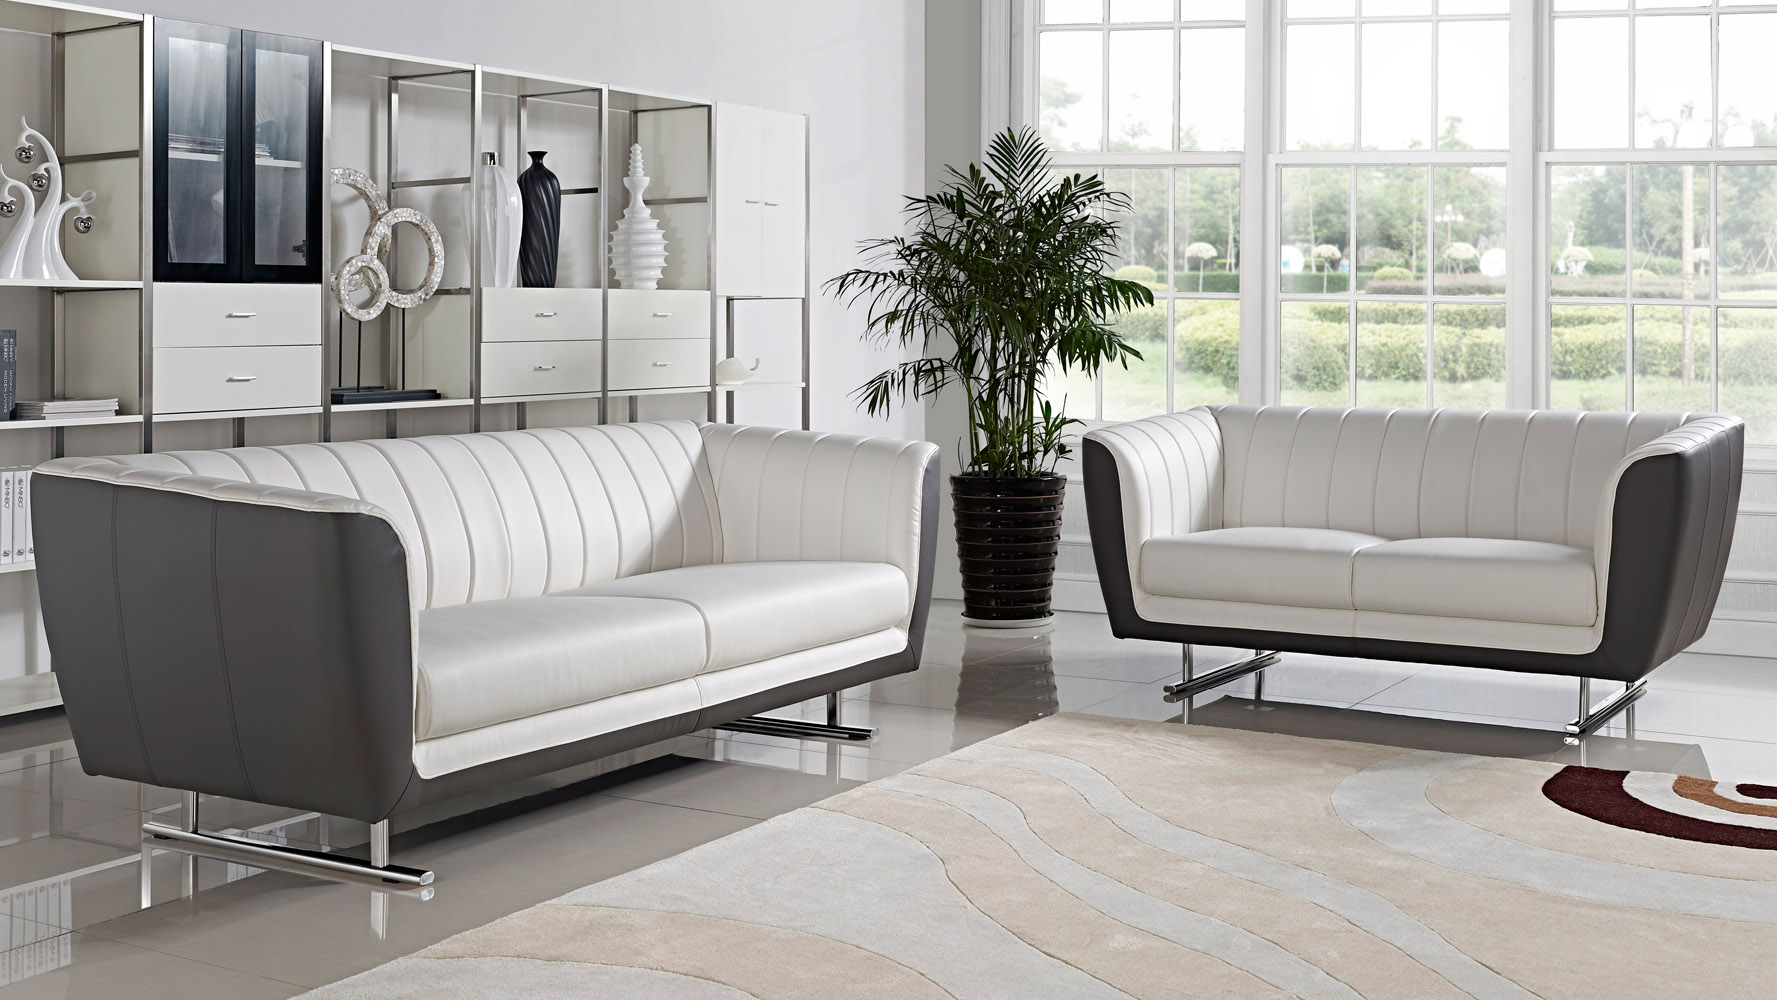 Sofa Set Offer Up Delta 3 432 431 Sofa Set White Zuri Furniture